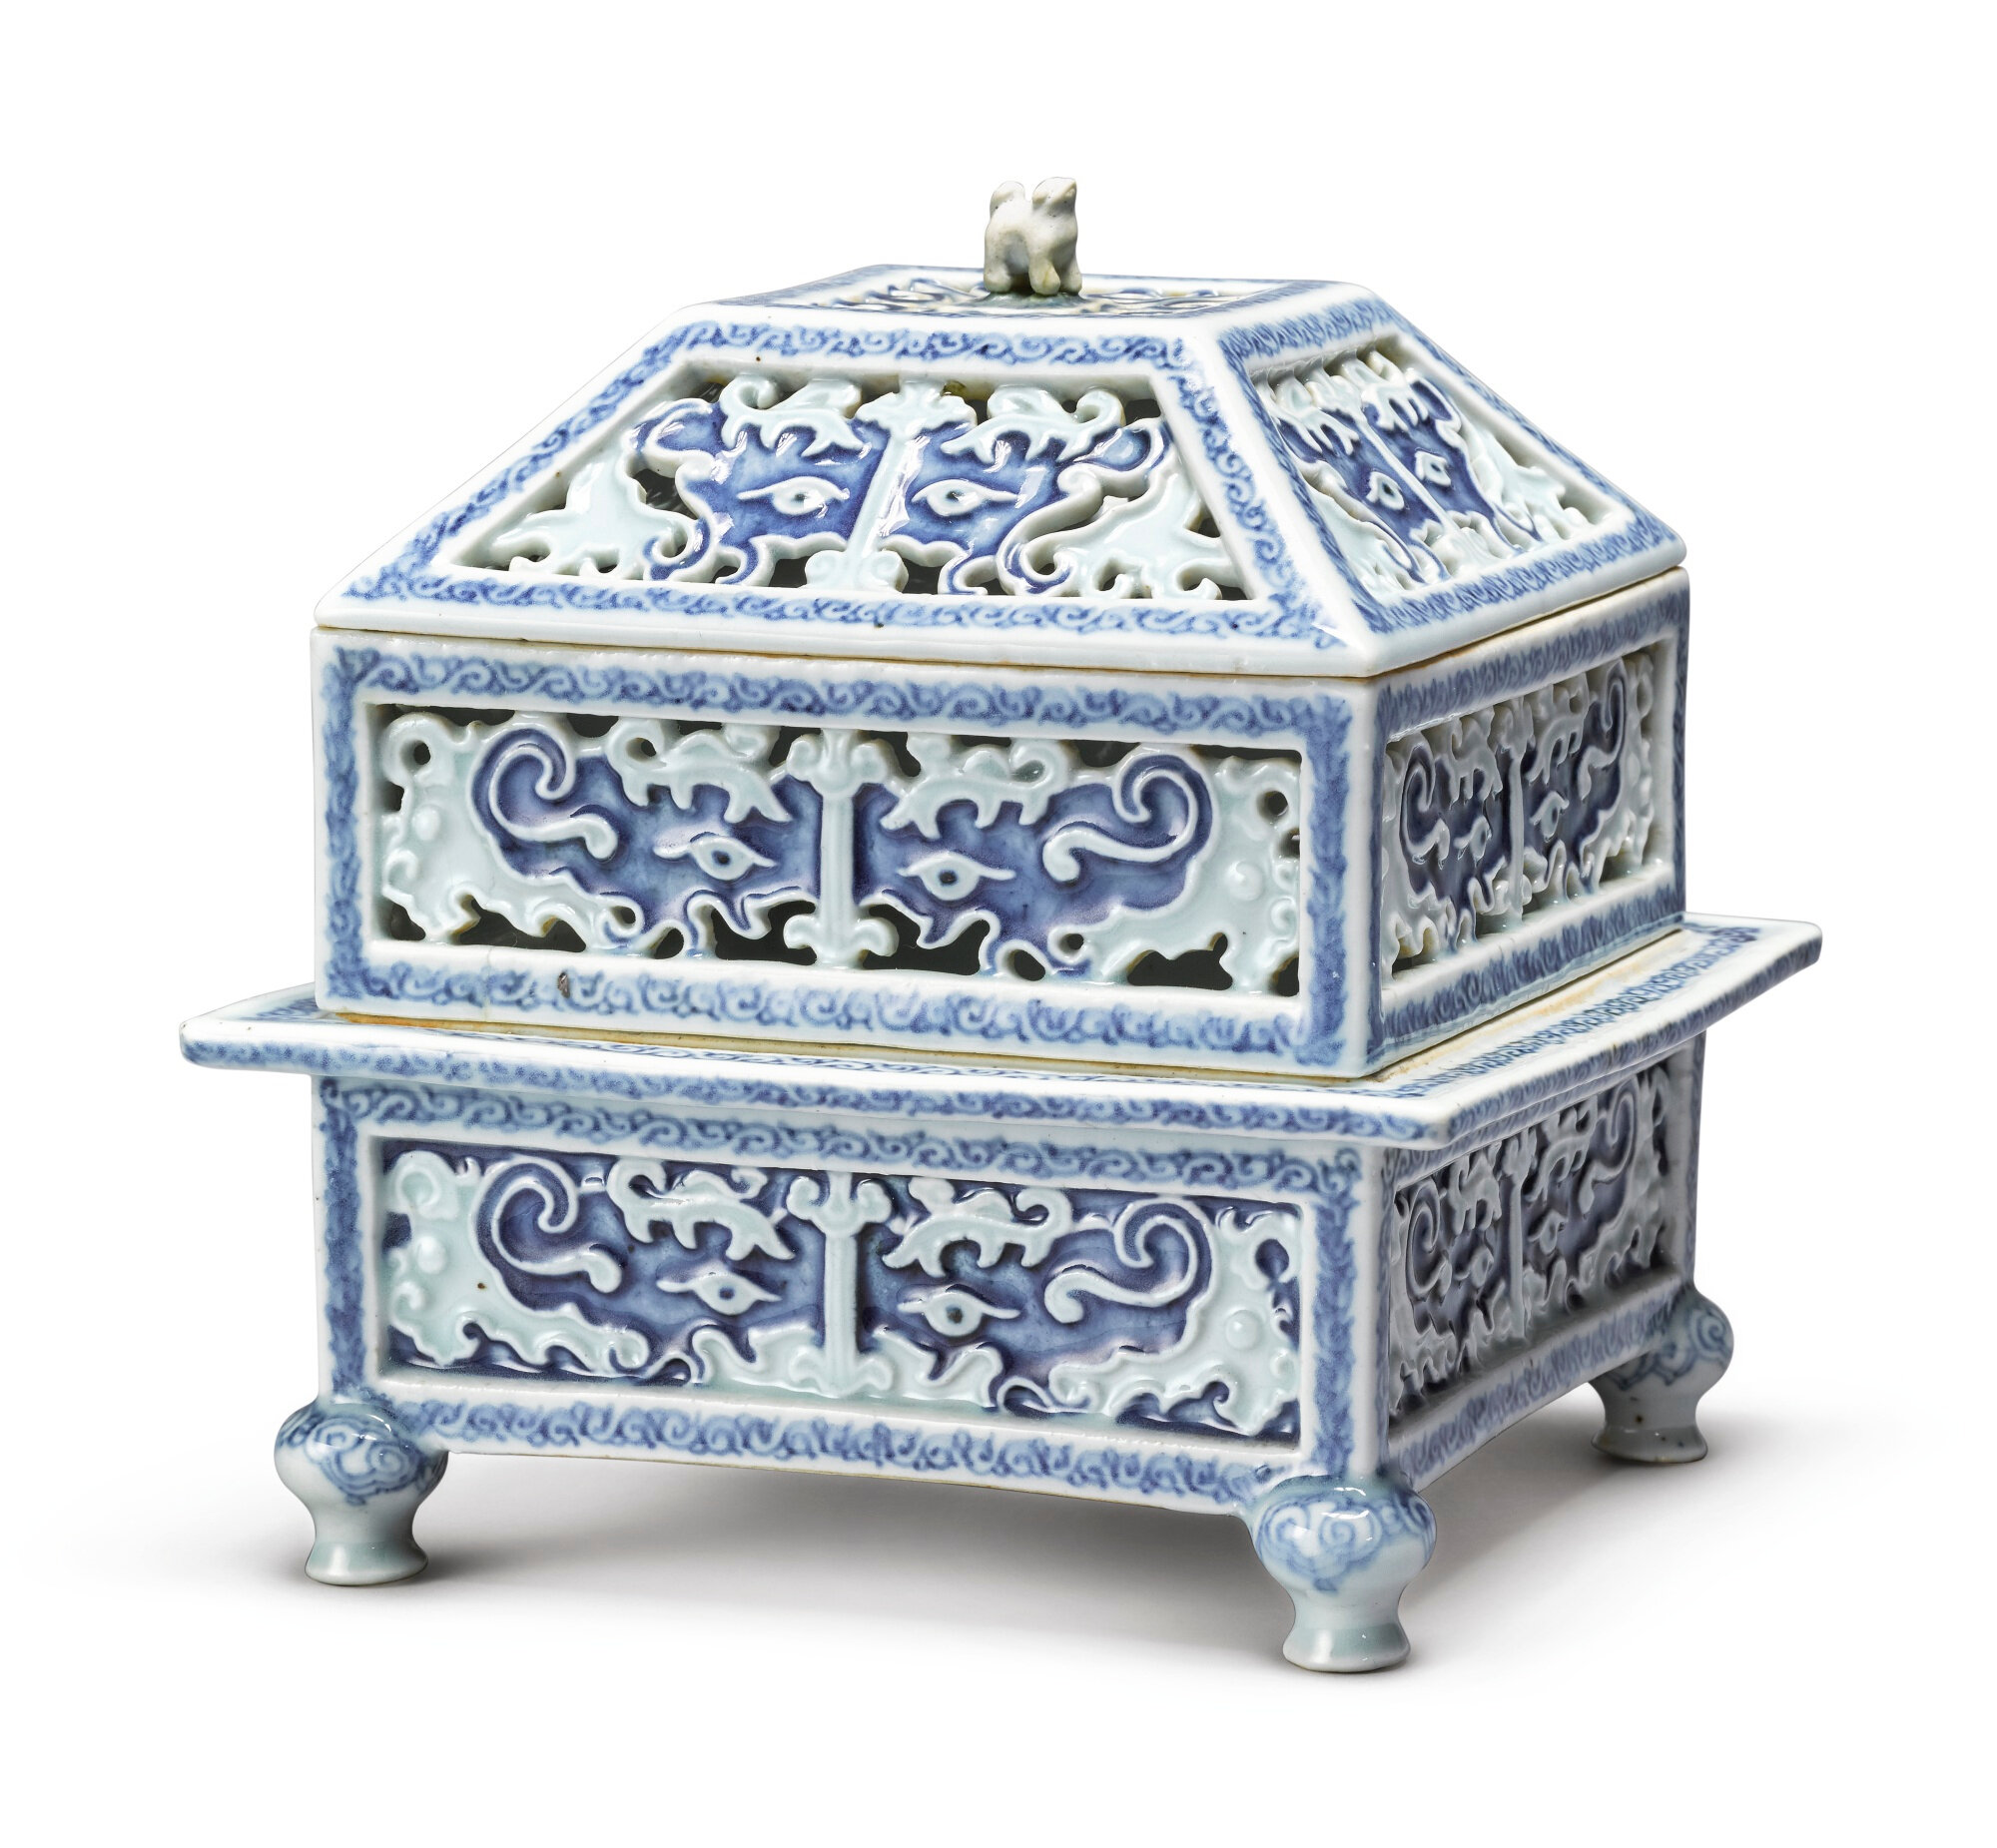 An extremely rare blue and white two-tier censer and cover, Qing Dynasty, Kangxi Period (1662-1722)